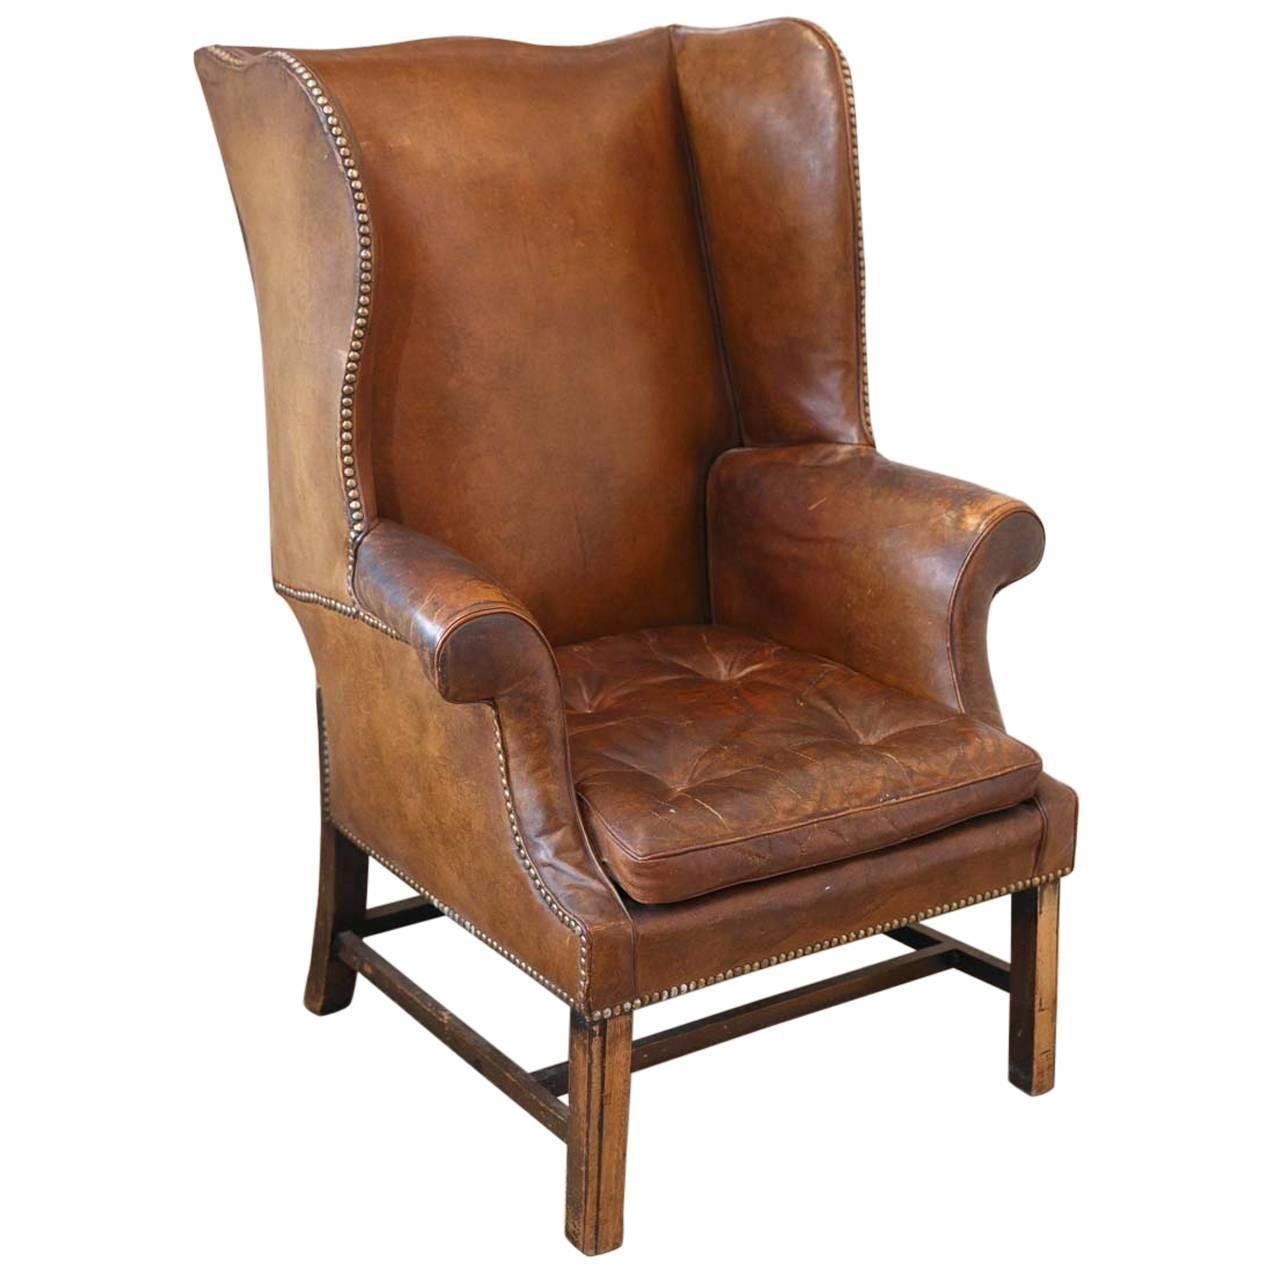 Best French Leather Wingback Chair From The 1920S From A 640 x 480